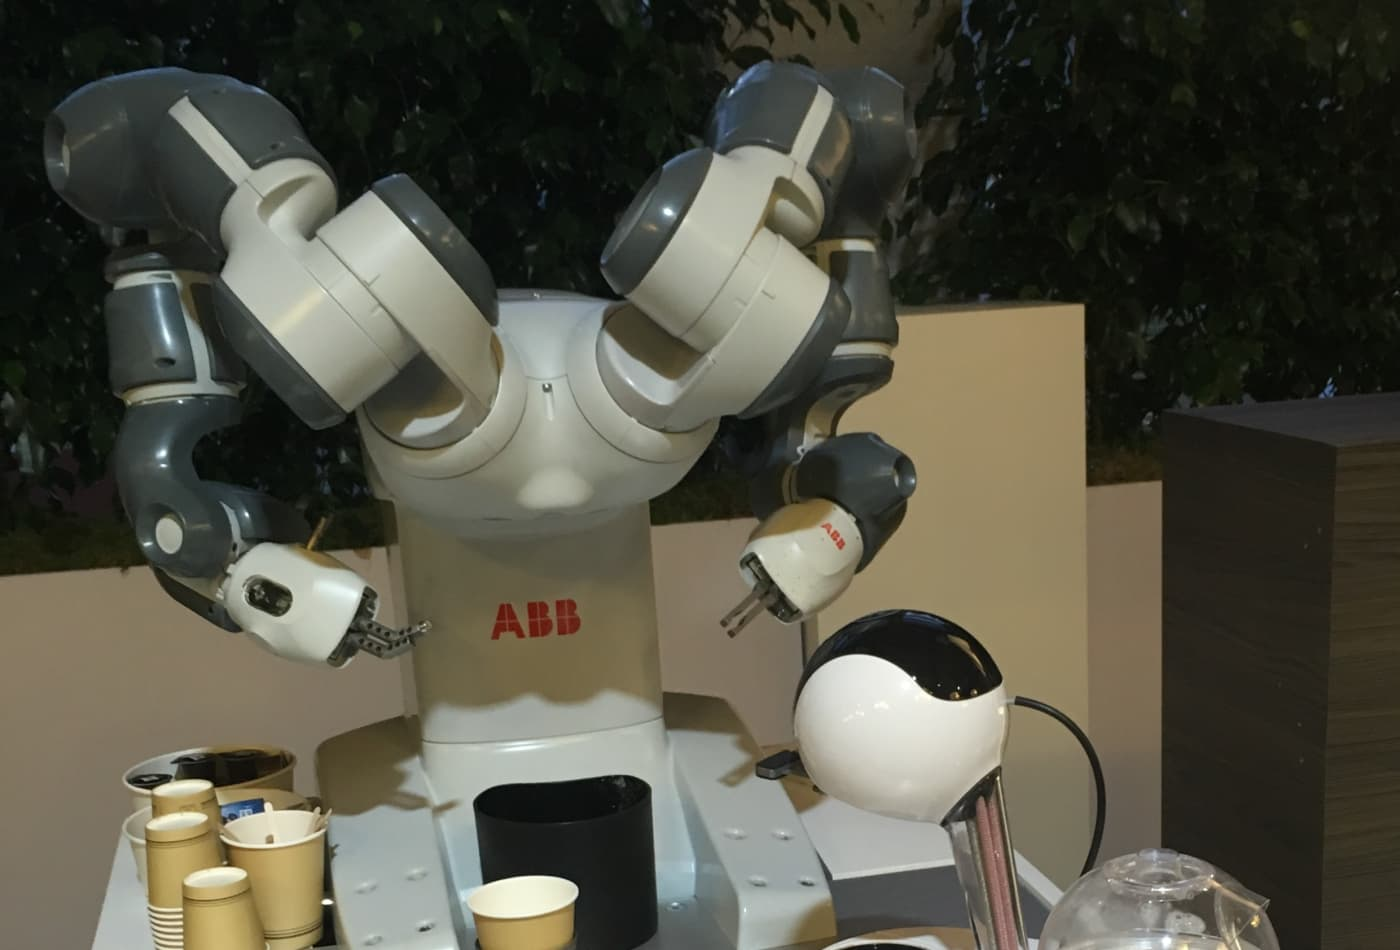 A robot is serving coffee at Davos to show people what's in store for the future